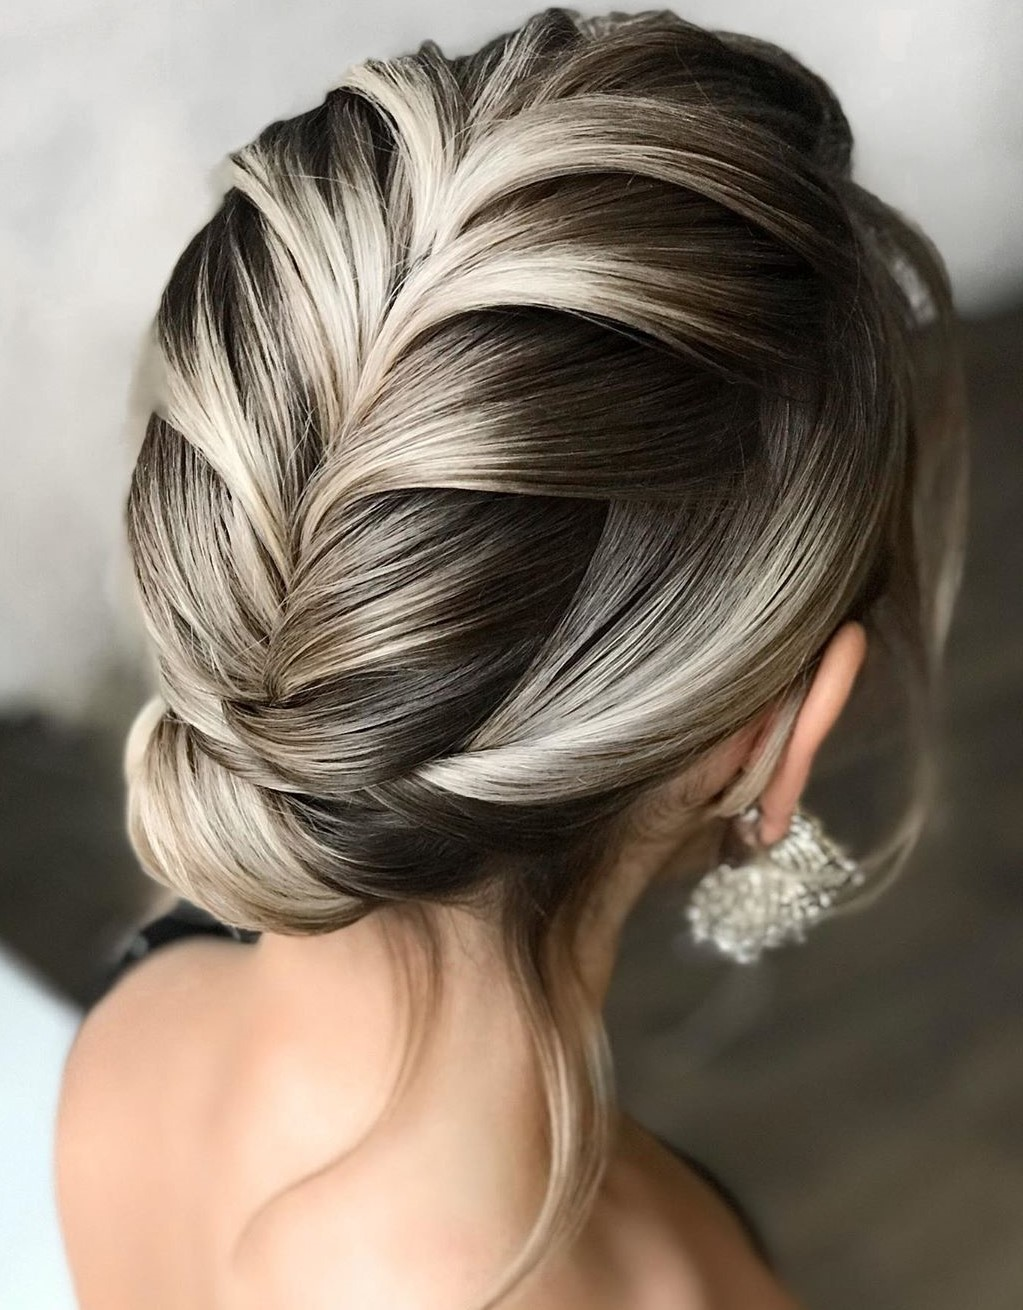 Straight Updo Hairstyle for Ombre Hair